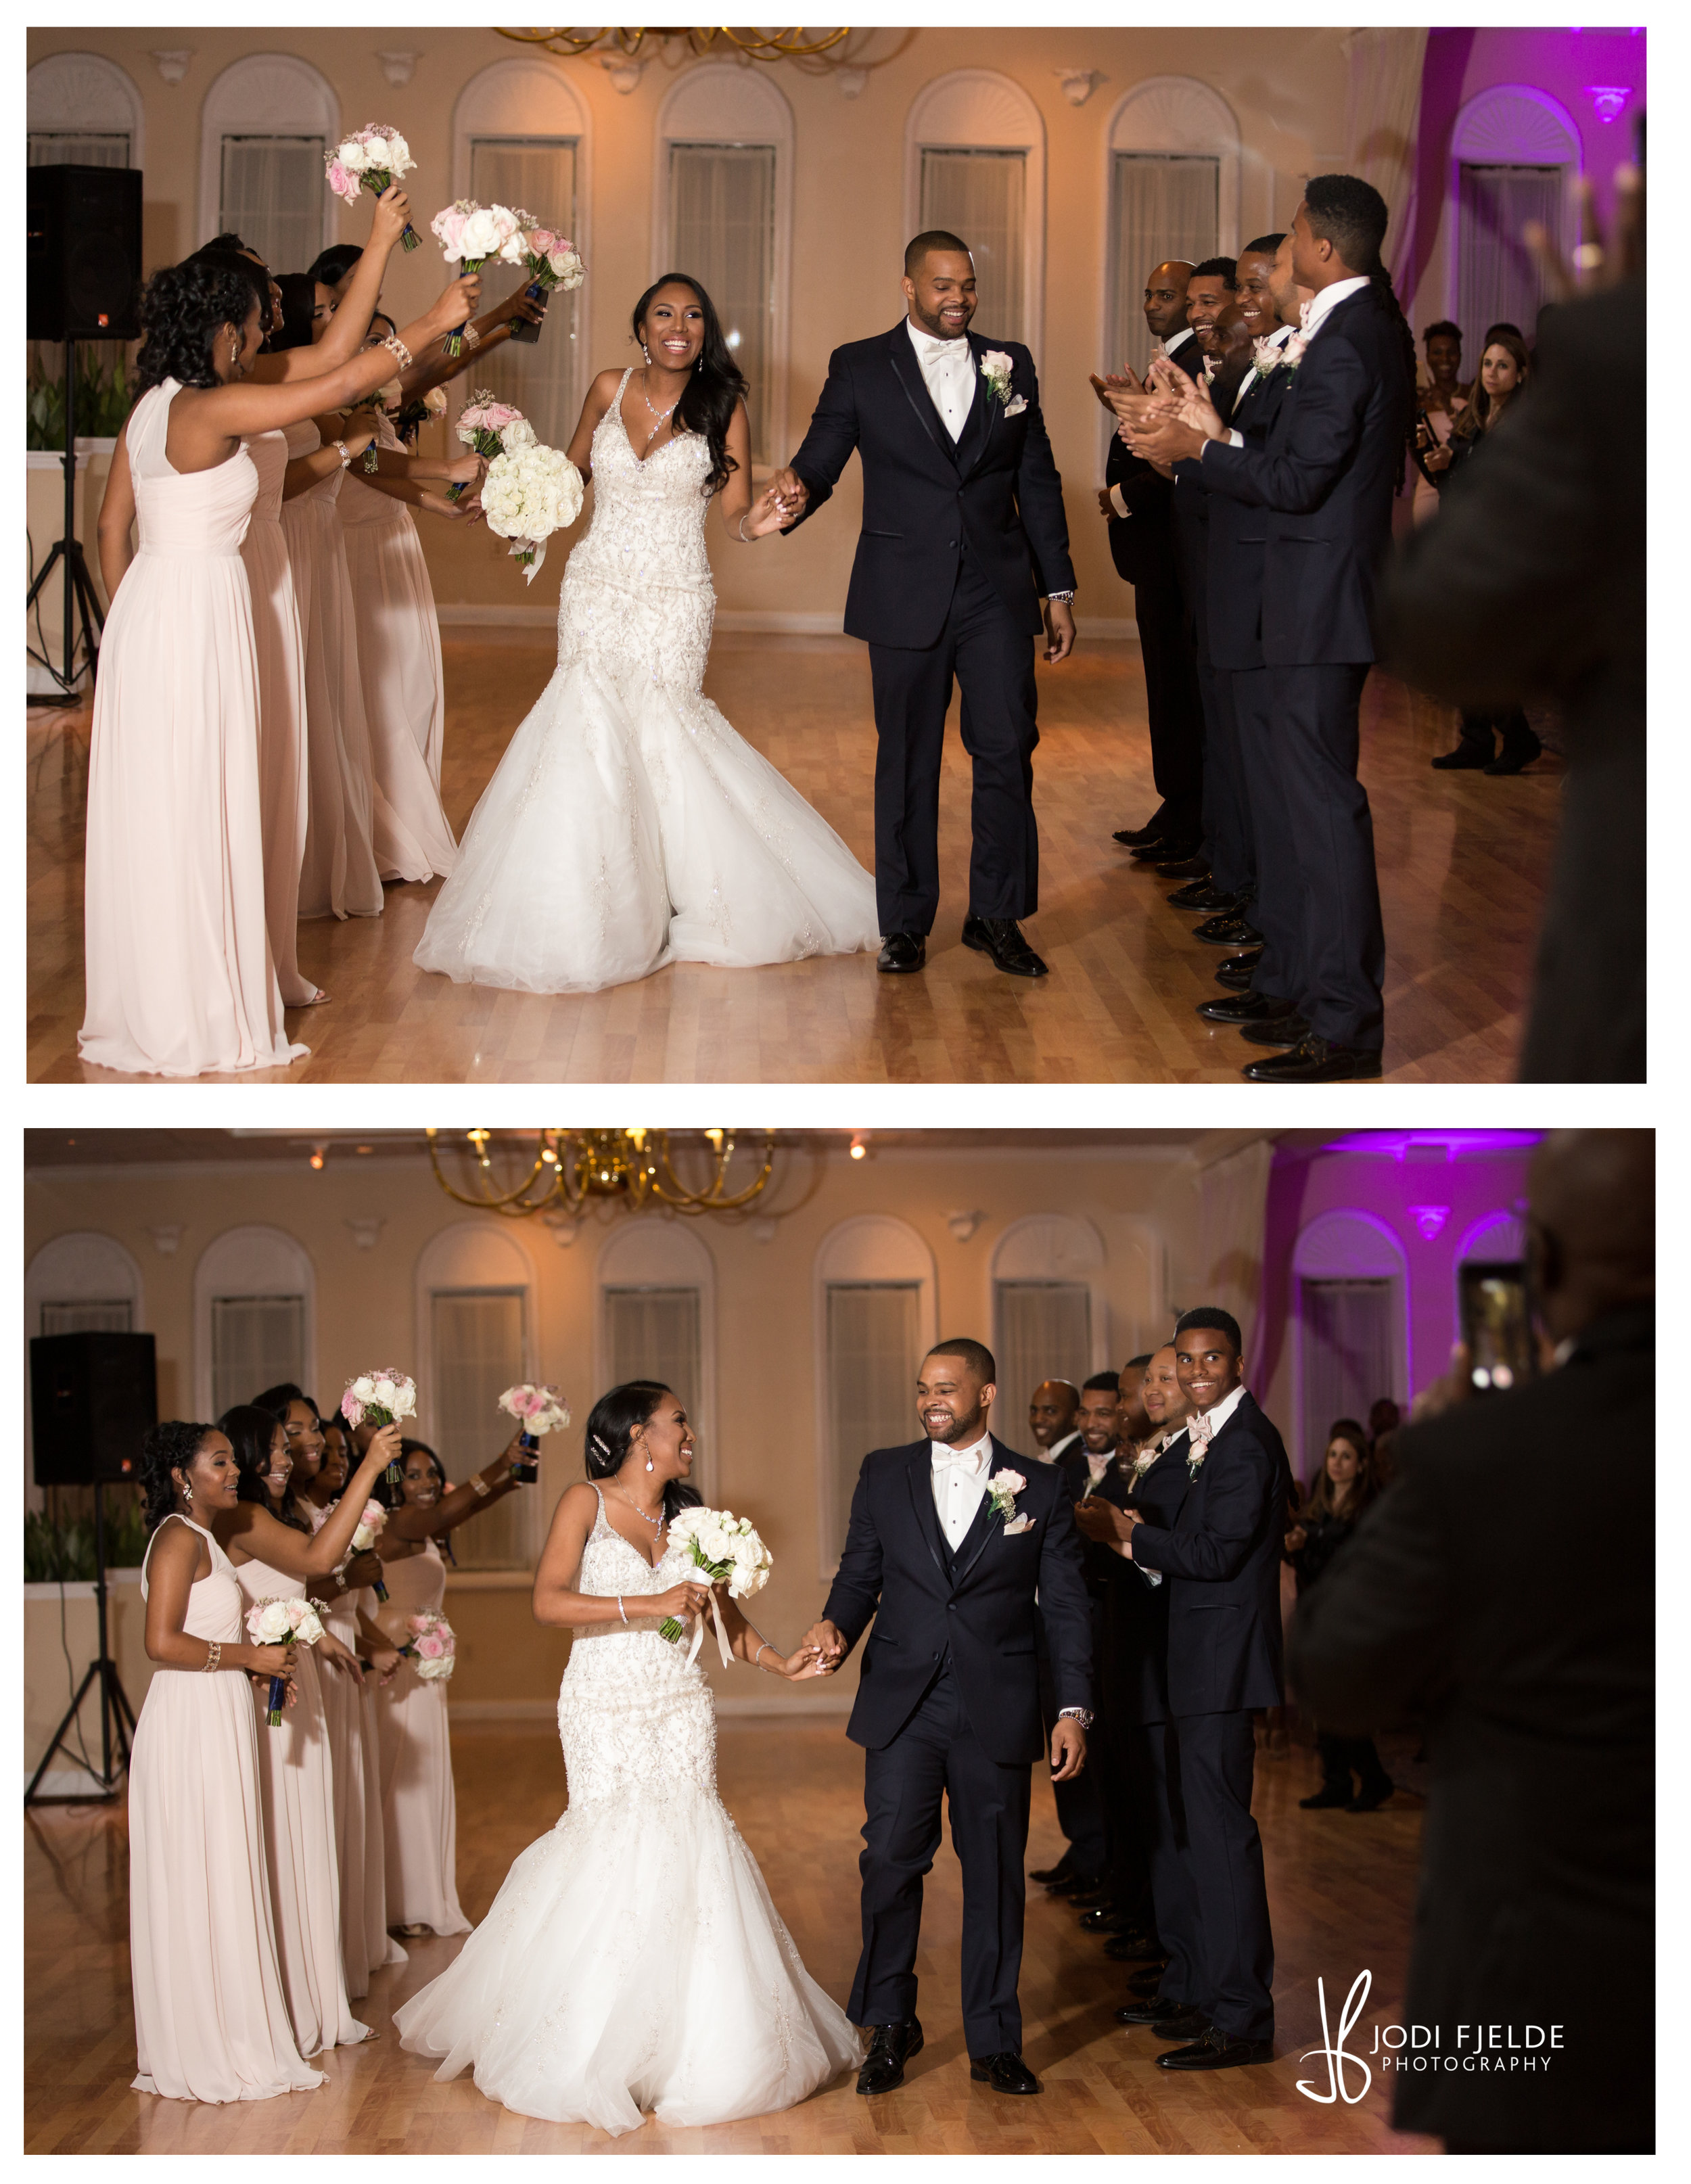 Benvenuto_wedding_Boynton_Beach_Jodi_Fjelde_Photography_Nikki_Otis_married_22.jpg